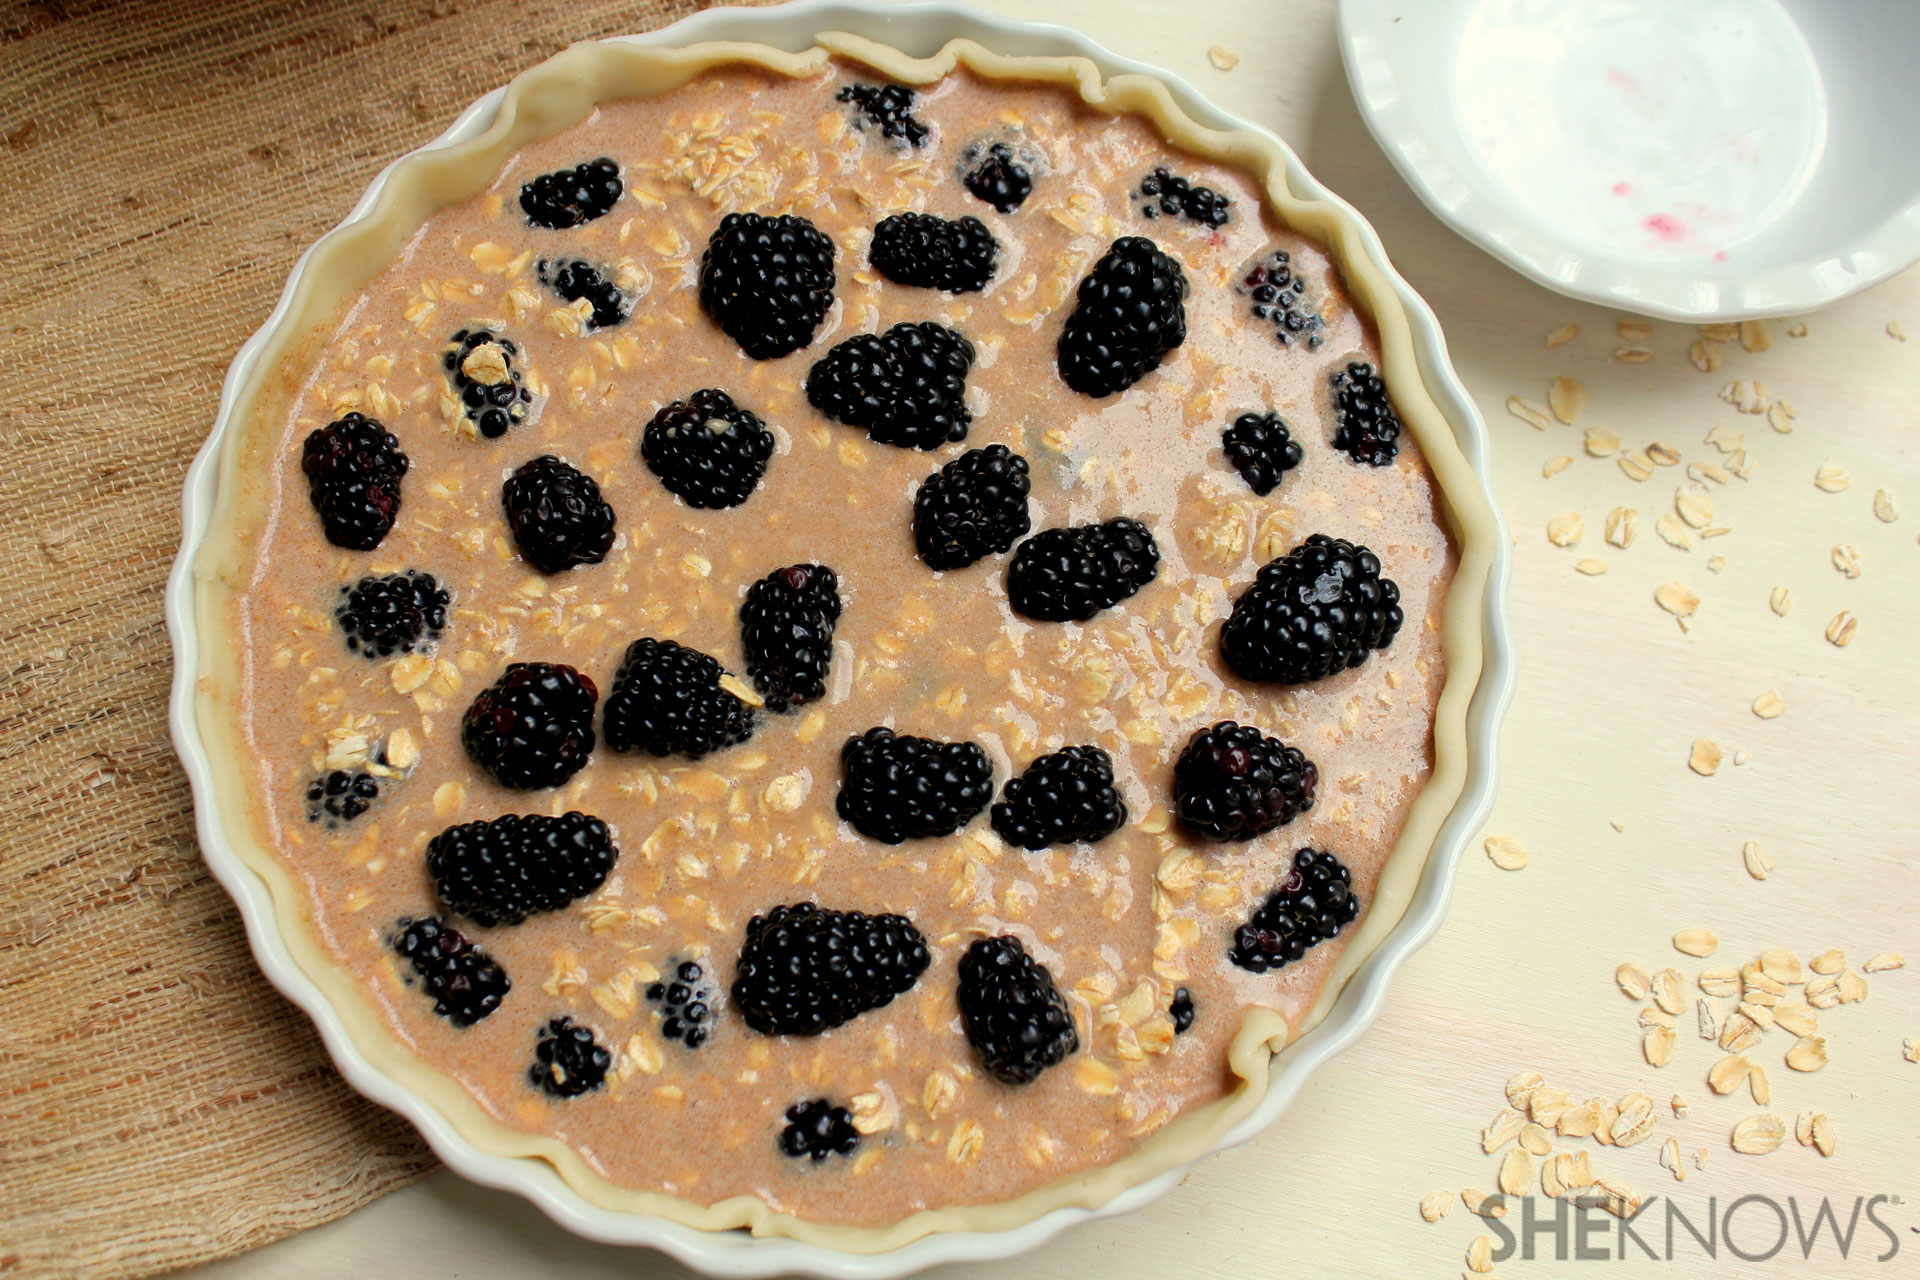 Oatmeal and Blackberry Pie 3